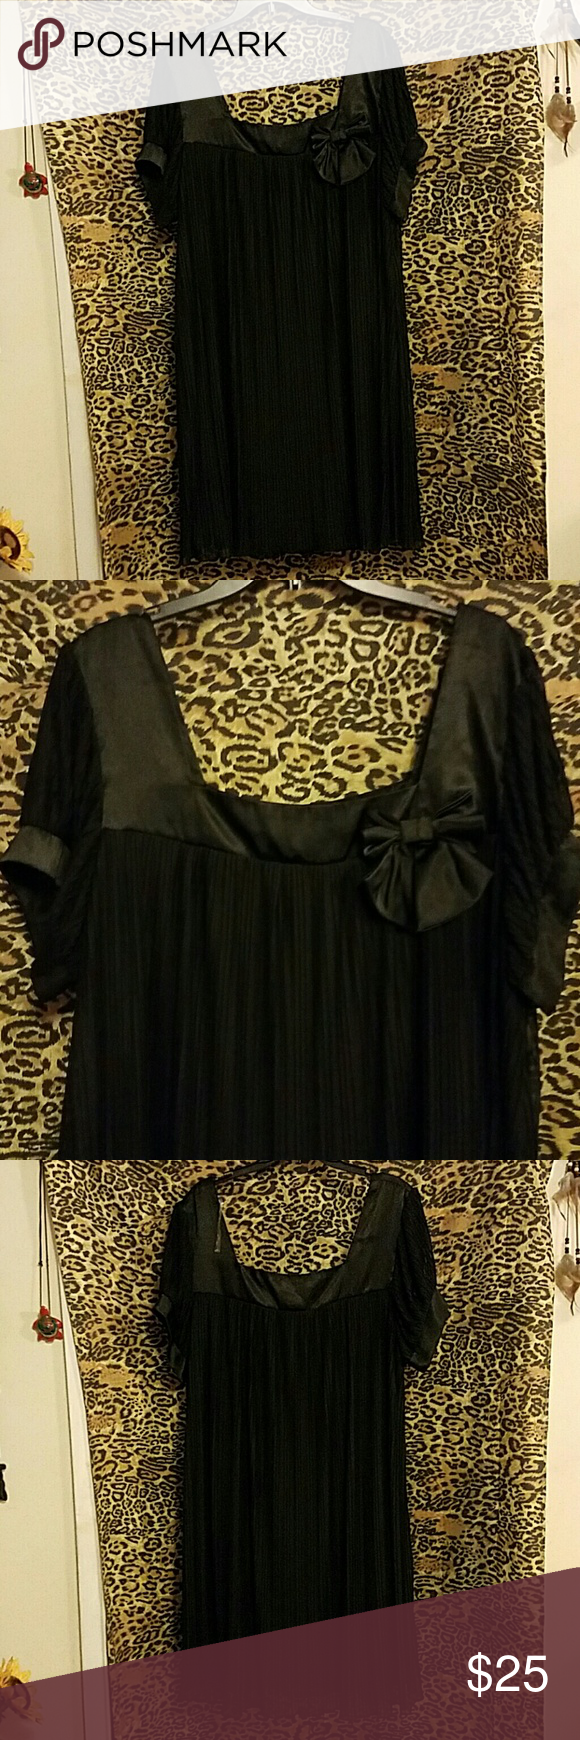 Black Bowed Dress size 20 Very cute 100% polyester contrast and lining dress with satin and bow accents. Would pair well over leggings or by itself. Gently used. Dress Barn Dresses Midi